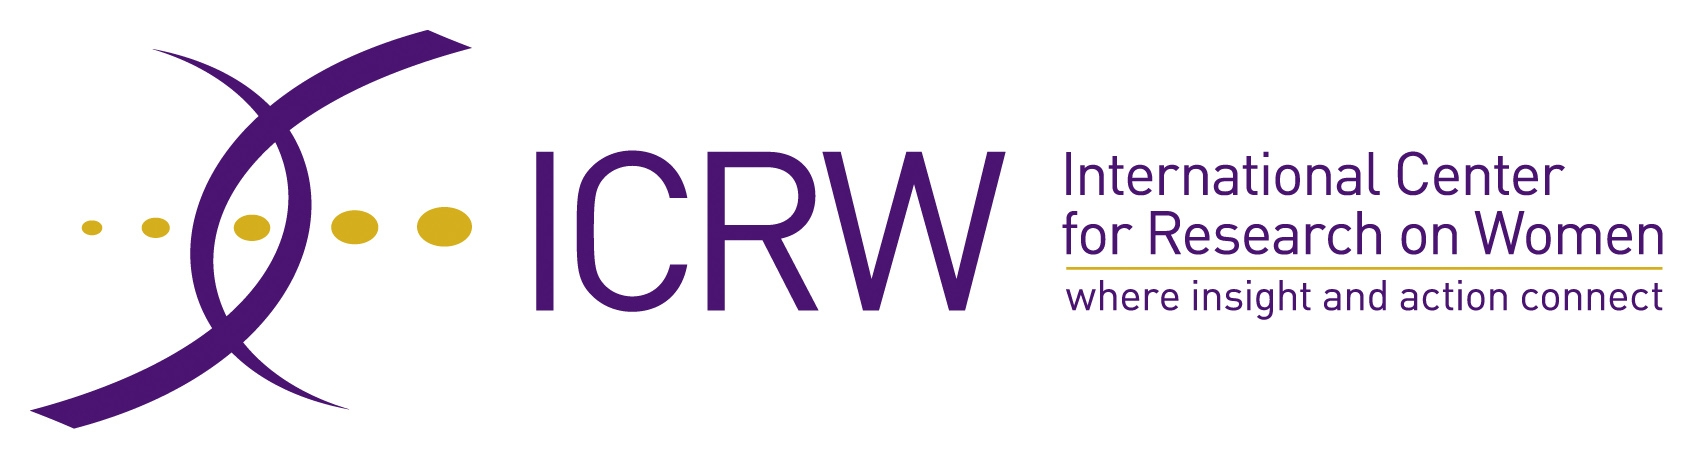 International Center for Research on Women (ICRW)